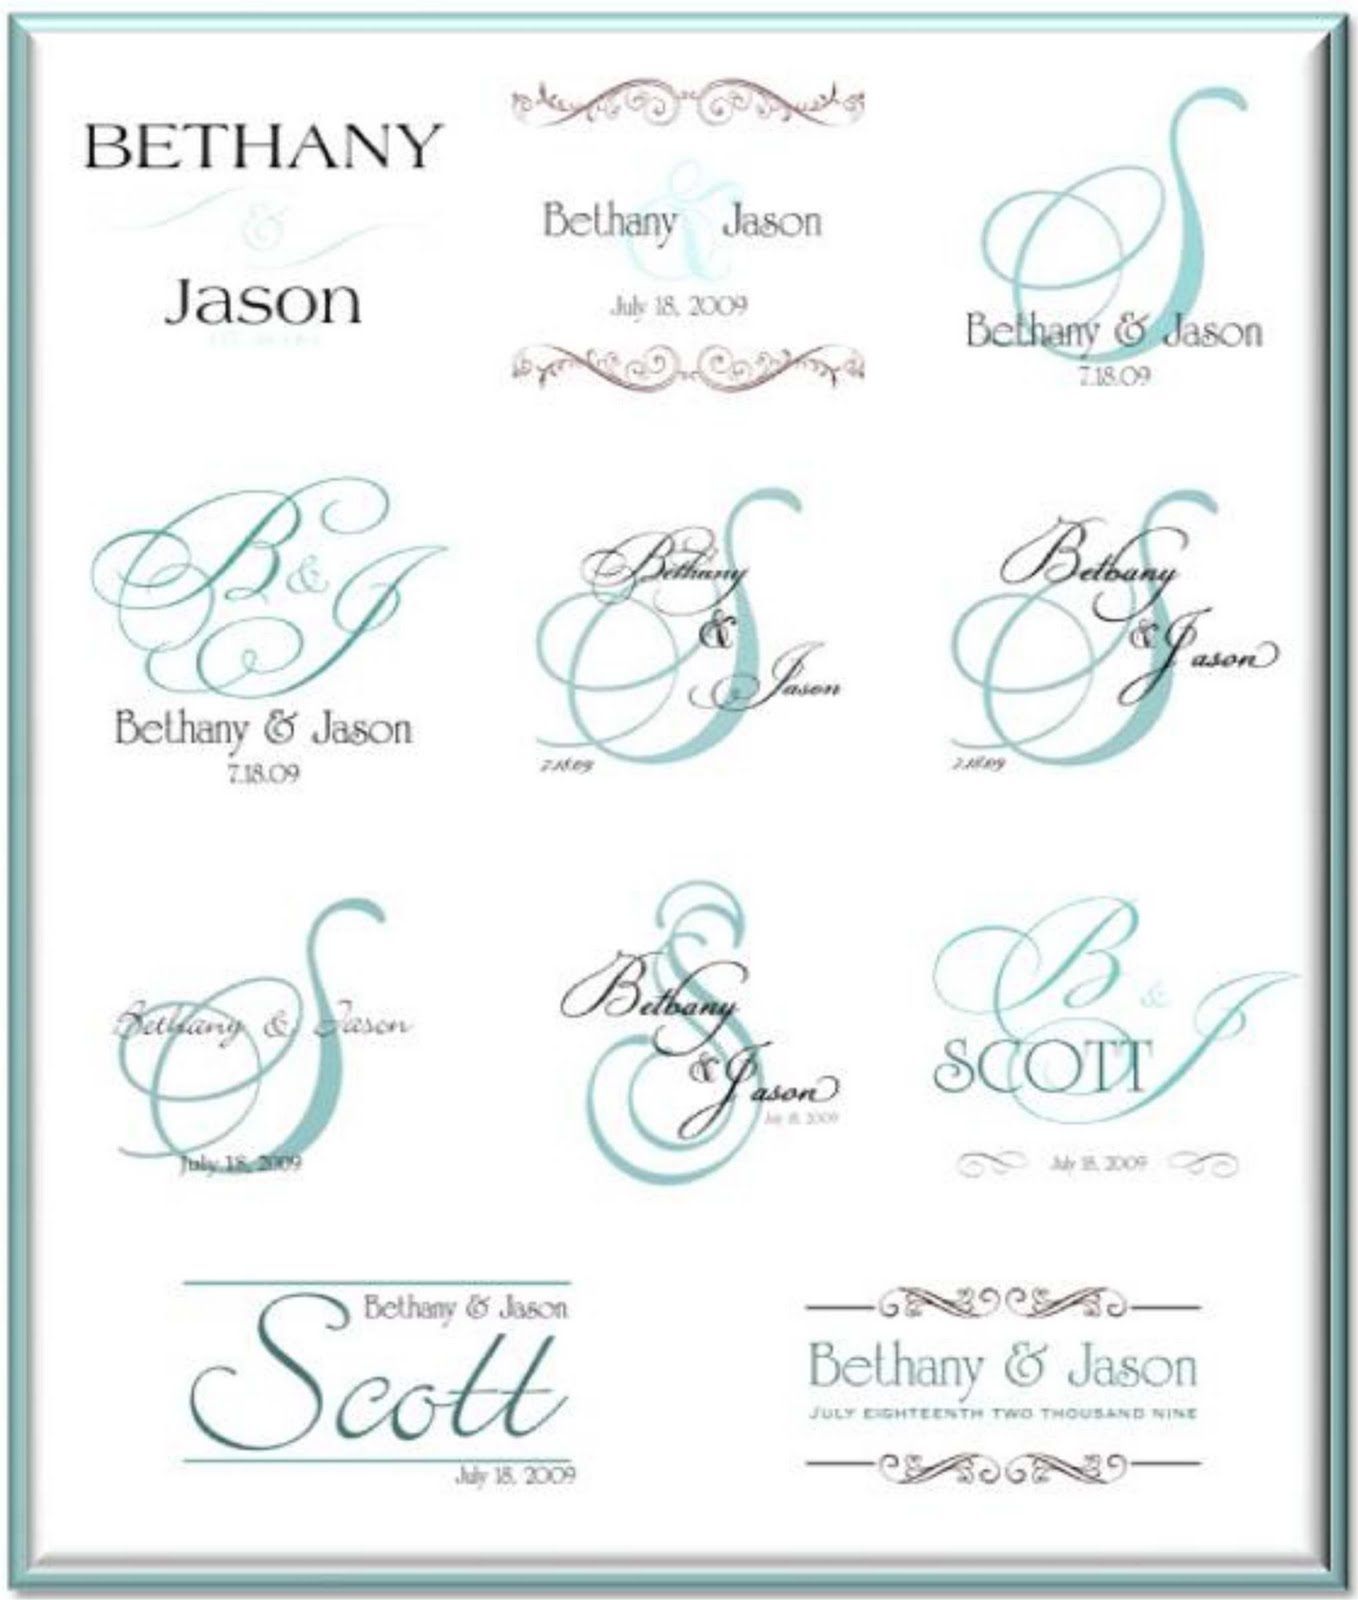 I Do Designs: Personalized Aisle Runner Tutorial